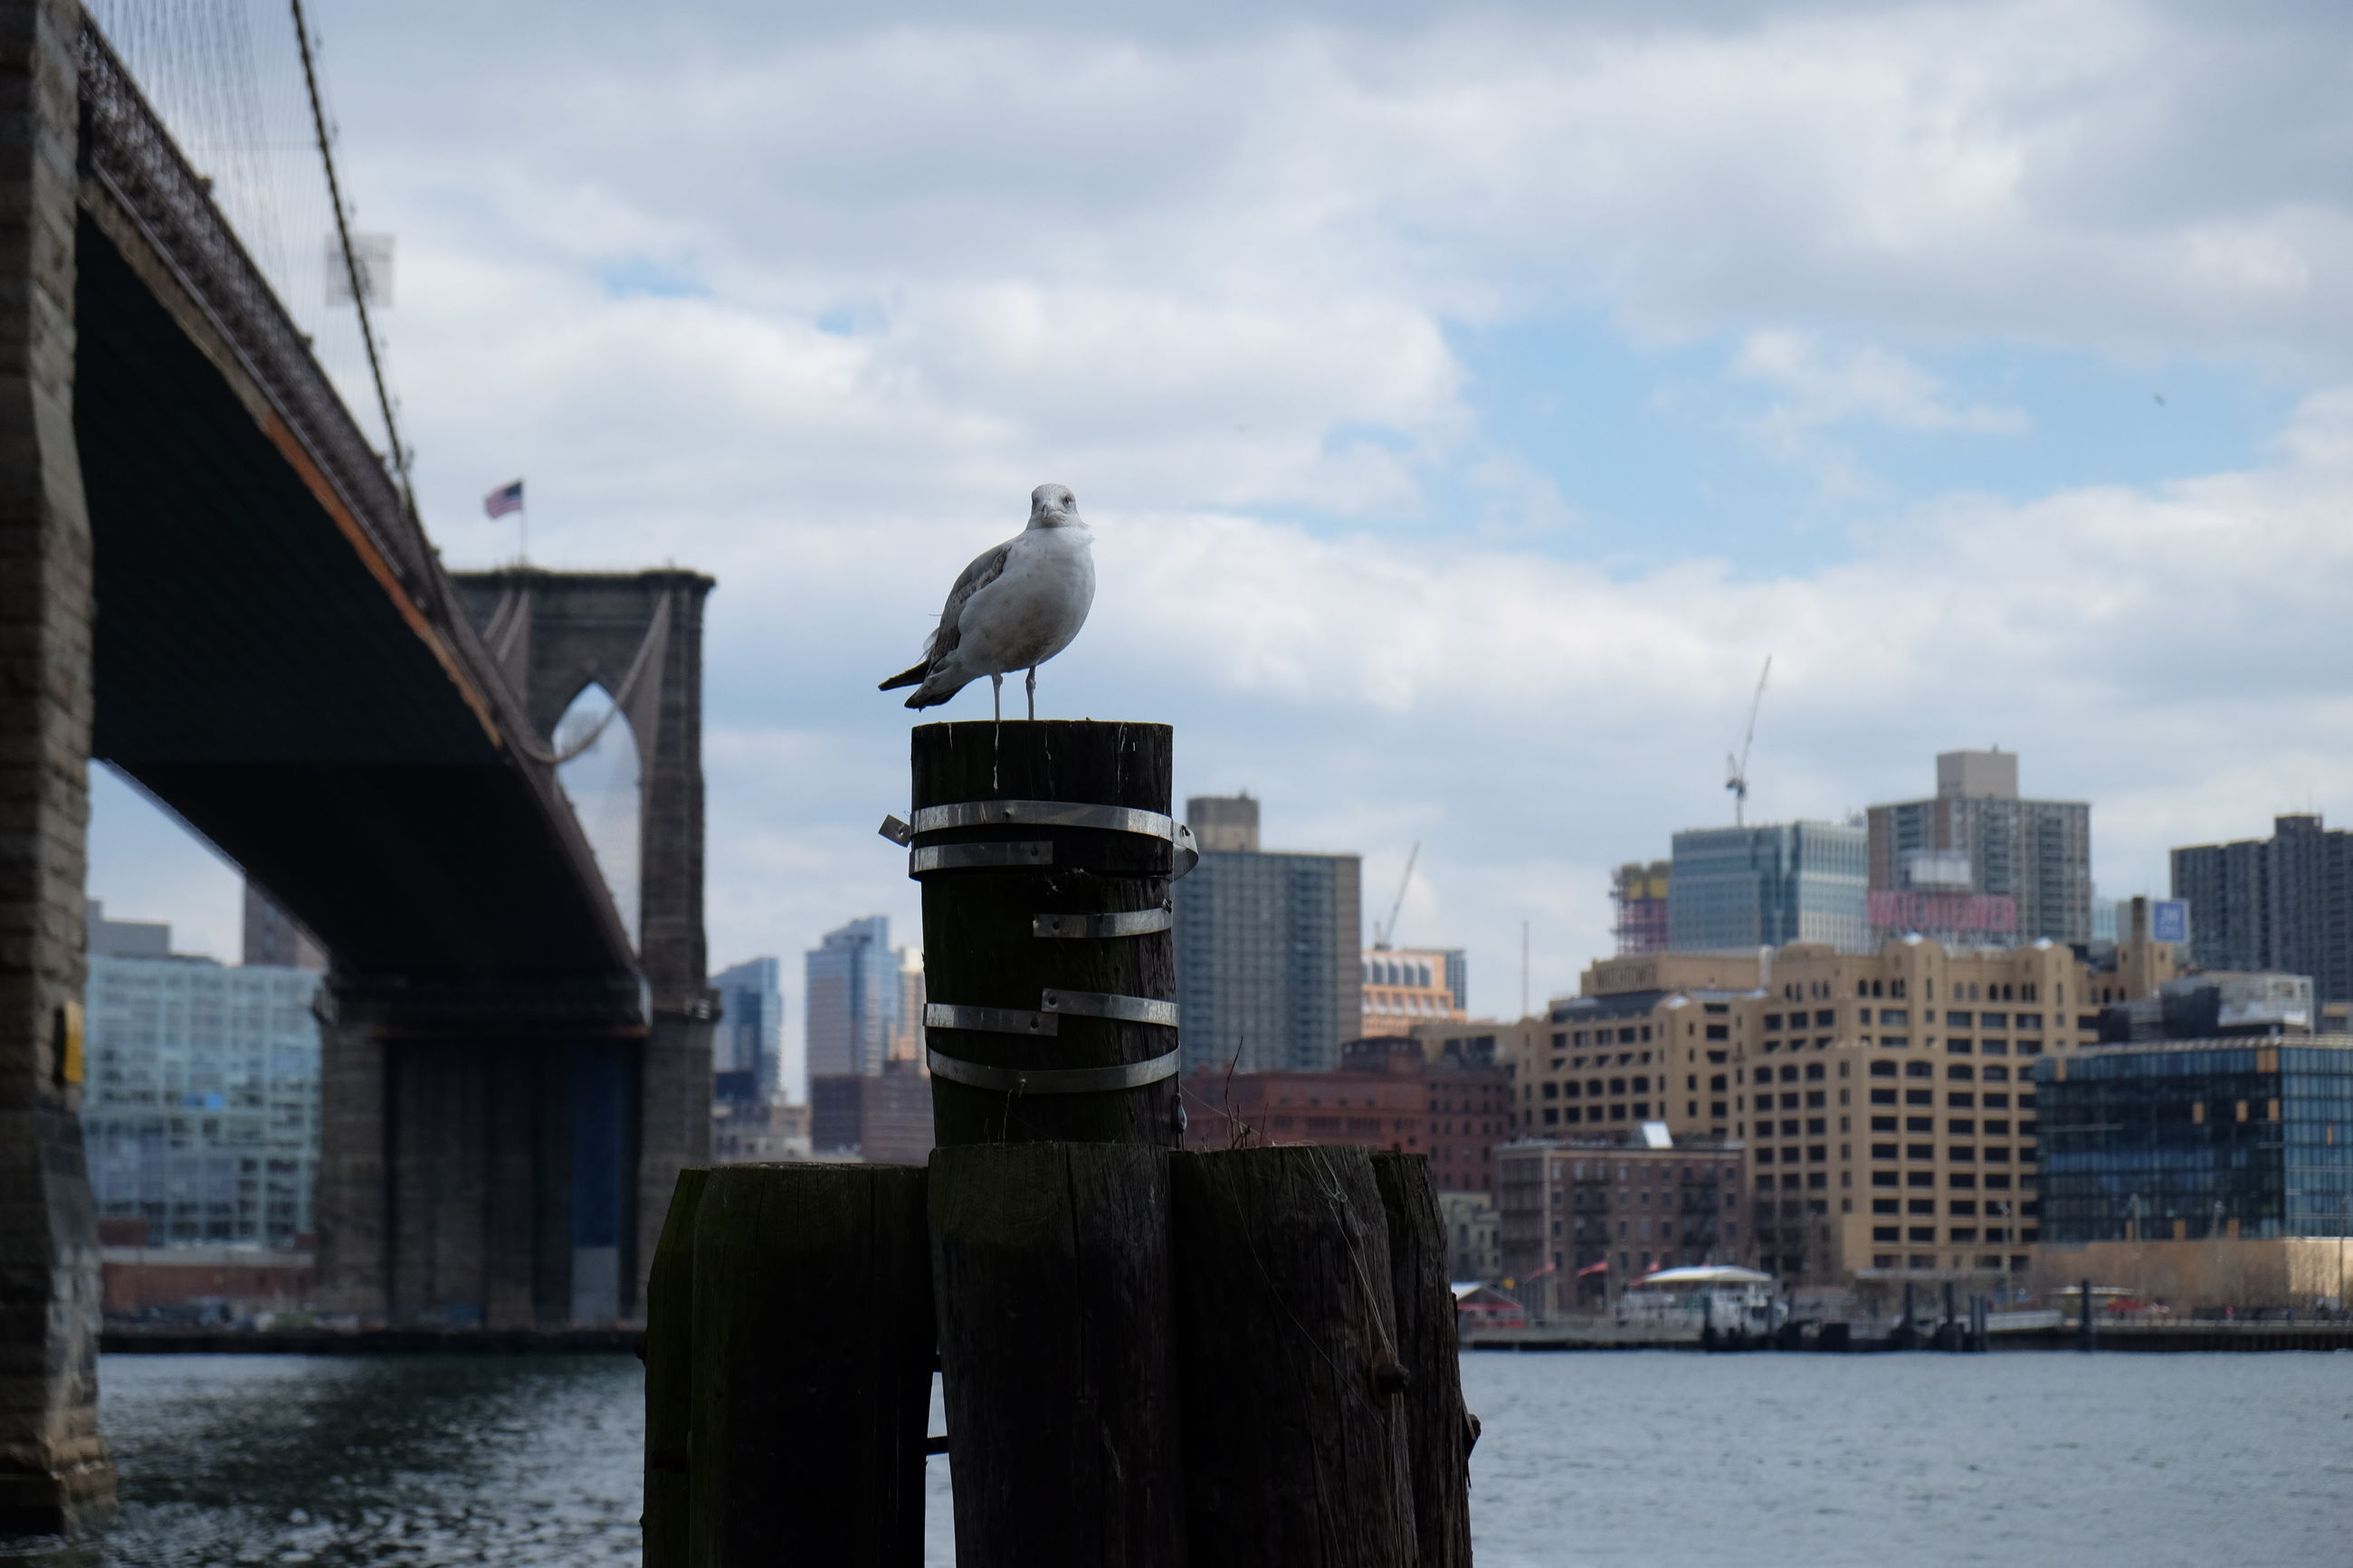 bird, animal themes, architecture, built structure, building exterior, animals in the wild, water, seagull, wildlife, sky, one animal, city, river, waterfront, sea, cloud - sky, cloud, perching, day, outdoors